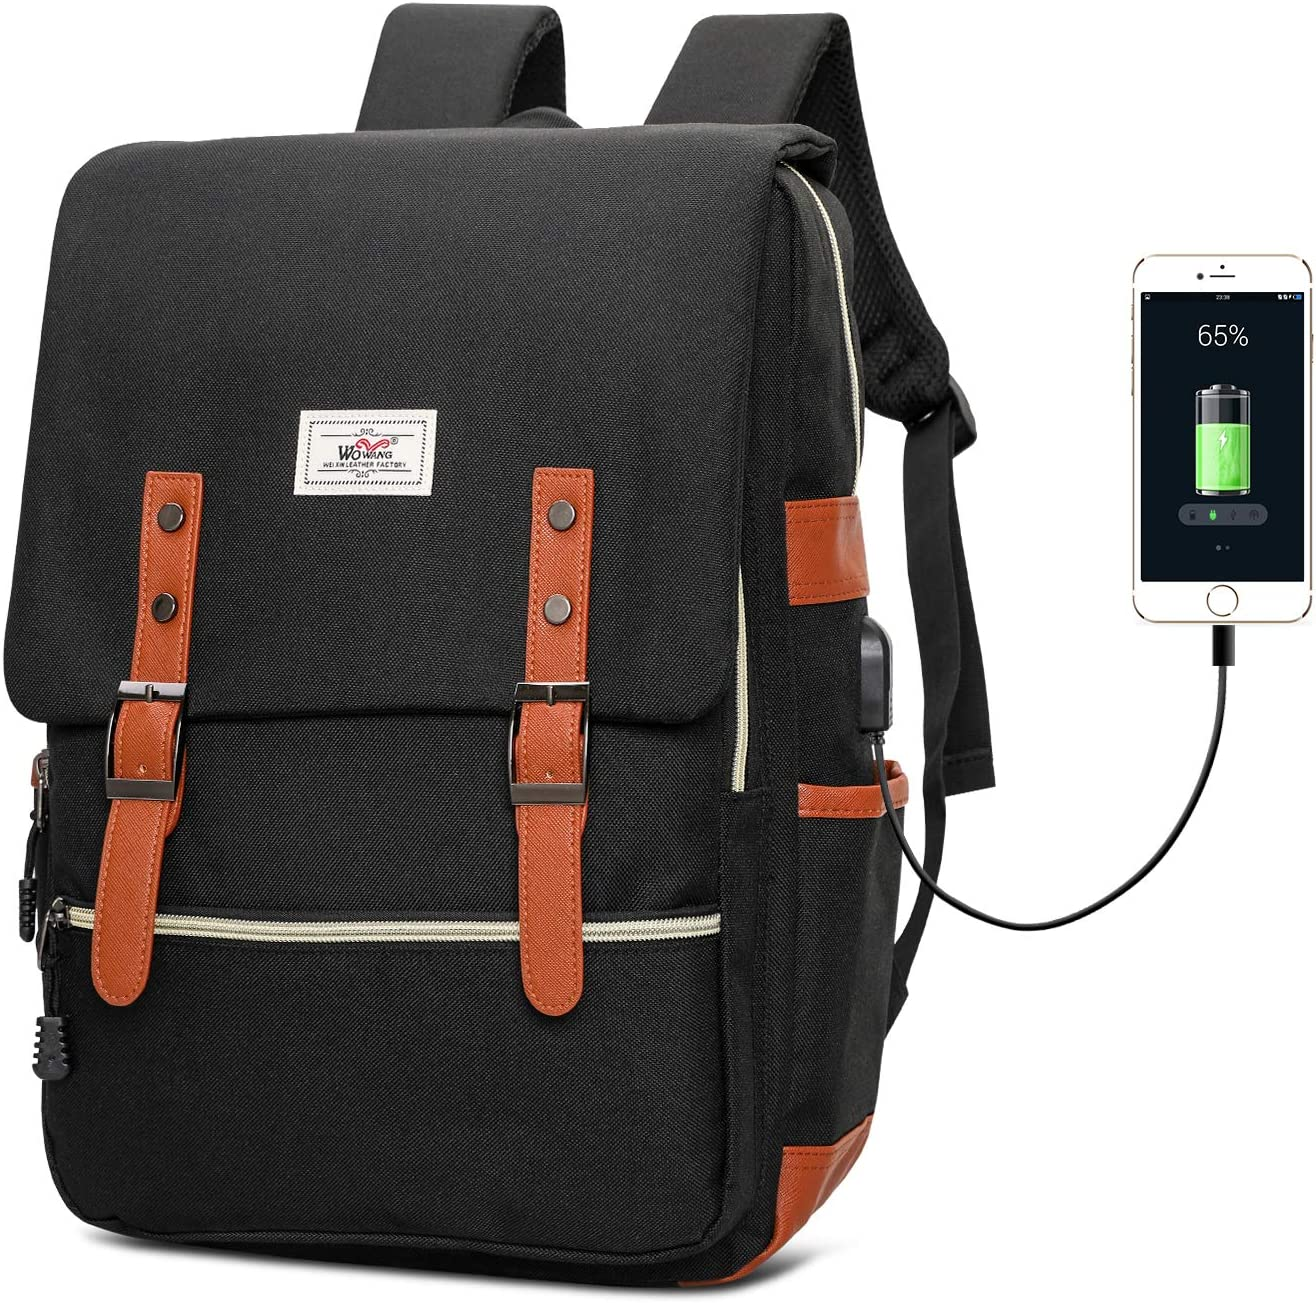 Vintage Laptop Backpack for Men Women, Unisex Fashion School College Rucksack, Water Resistant Business Travel Backpack with USB Charging Port Fits 15.6 Inch Laptop